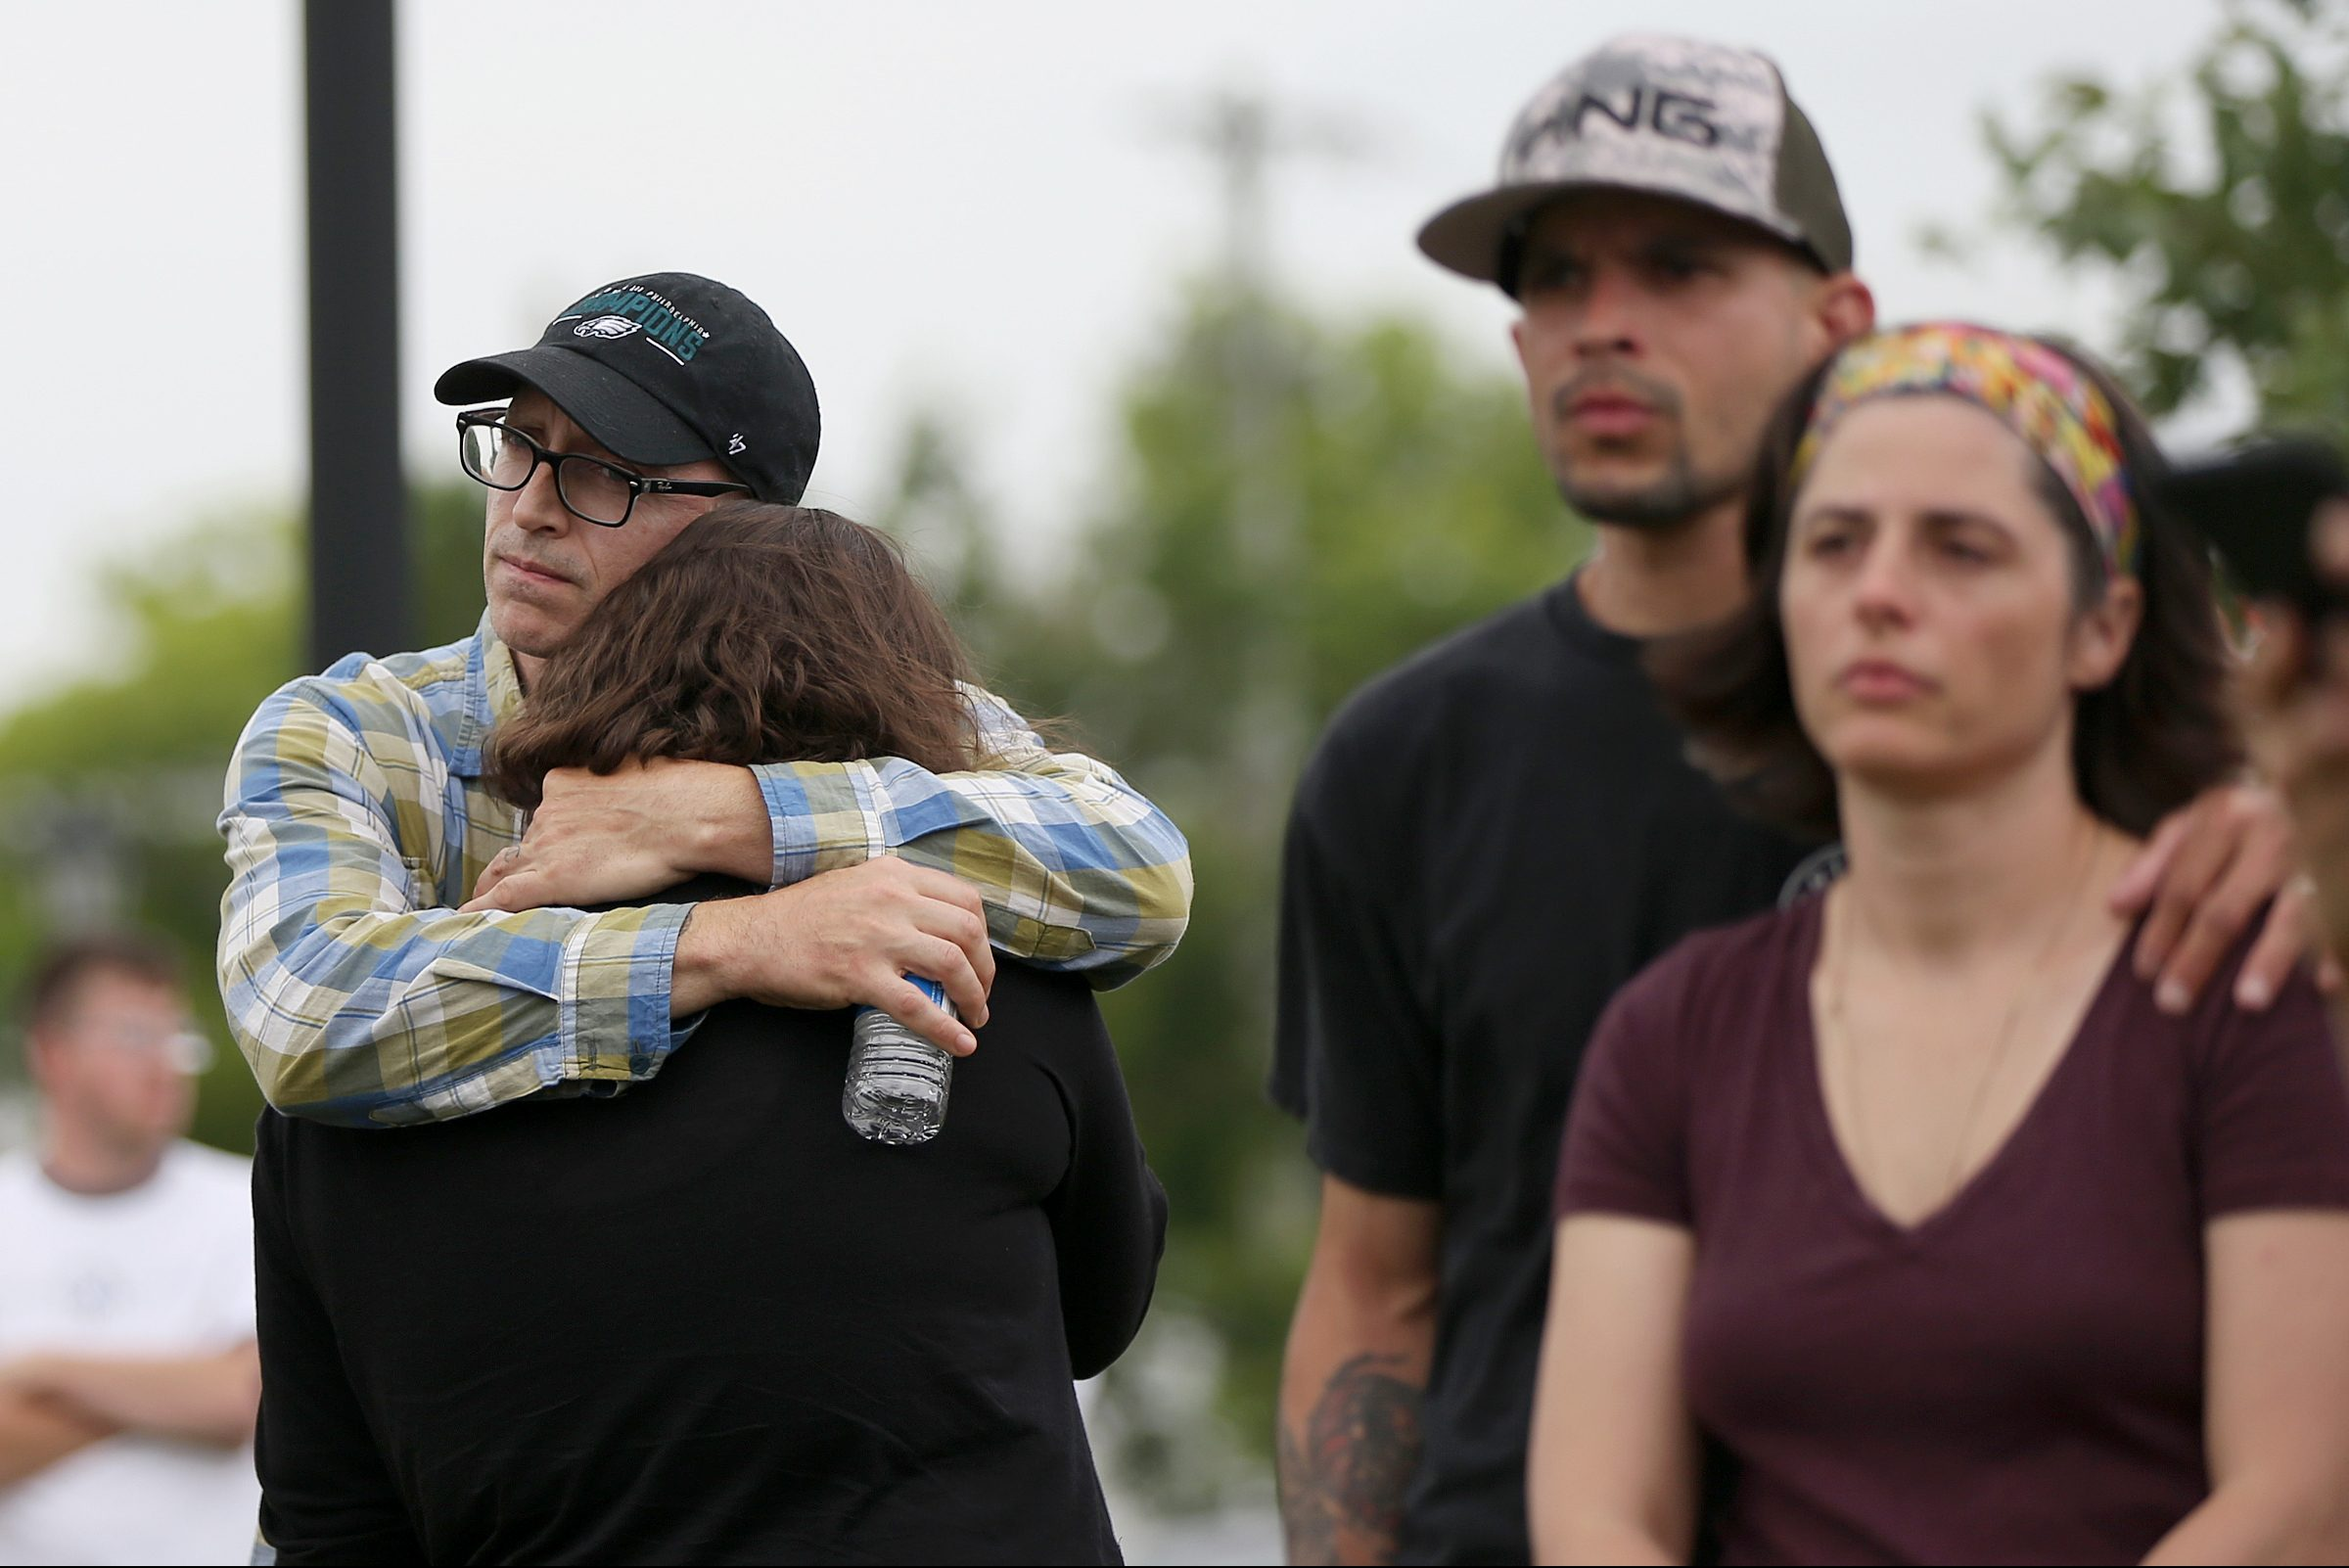 Family members and friends of a man trapped in an underground chamber and presumed dead after an explosion Tuesday rocked a gas station in Bensalem, Pa., listen during a news conference by township public safety director Frederick Harran on Wednesday, June 13, 2018. The explosion also left one person in critical condition.